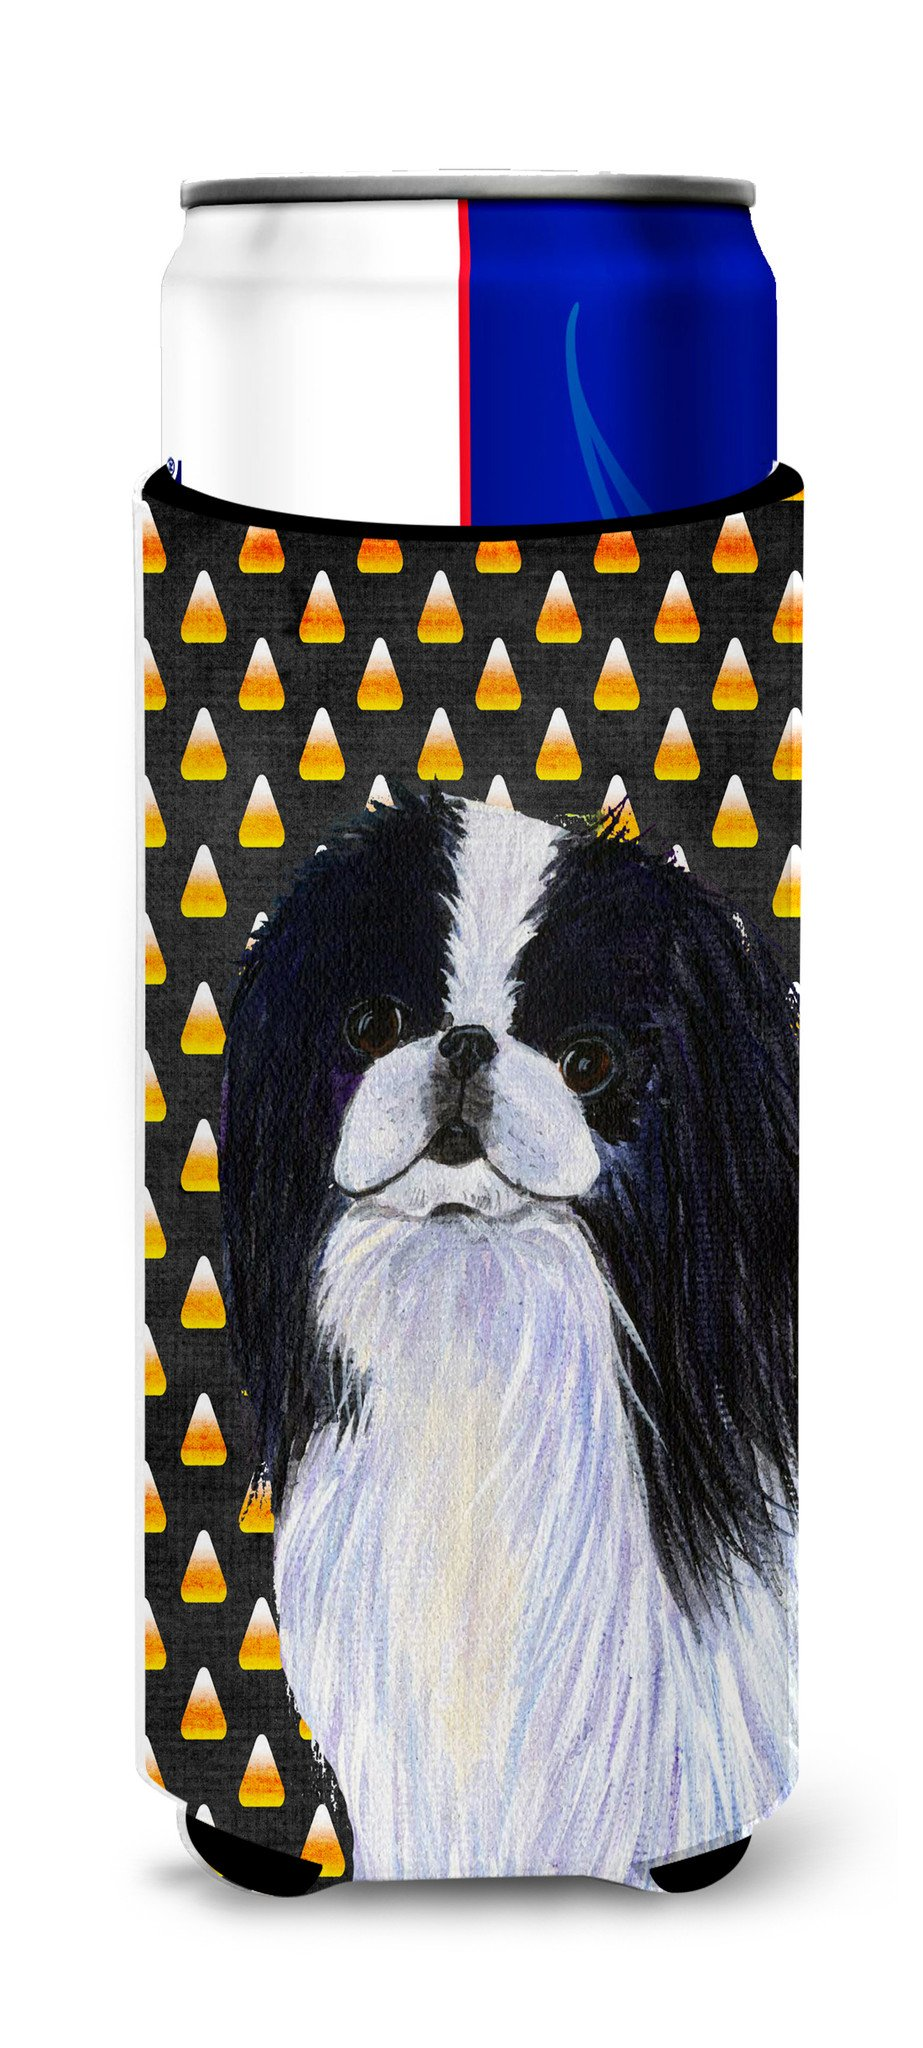 Japanese Chin Candy Corn Halloween Portrait Ultra Beverage Insulators for slim cans SS4260MUK by Caroline's Treasures